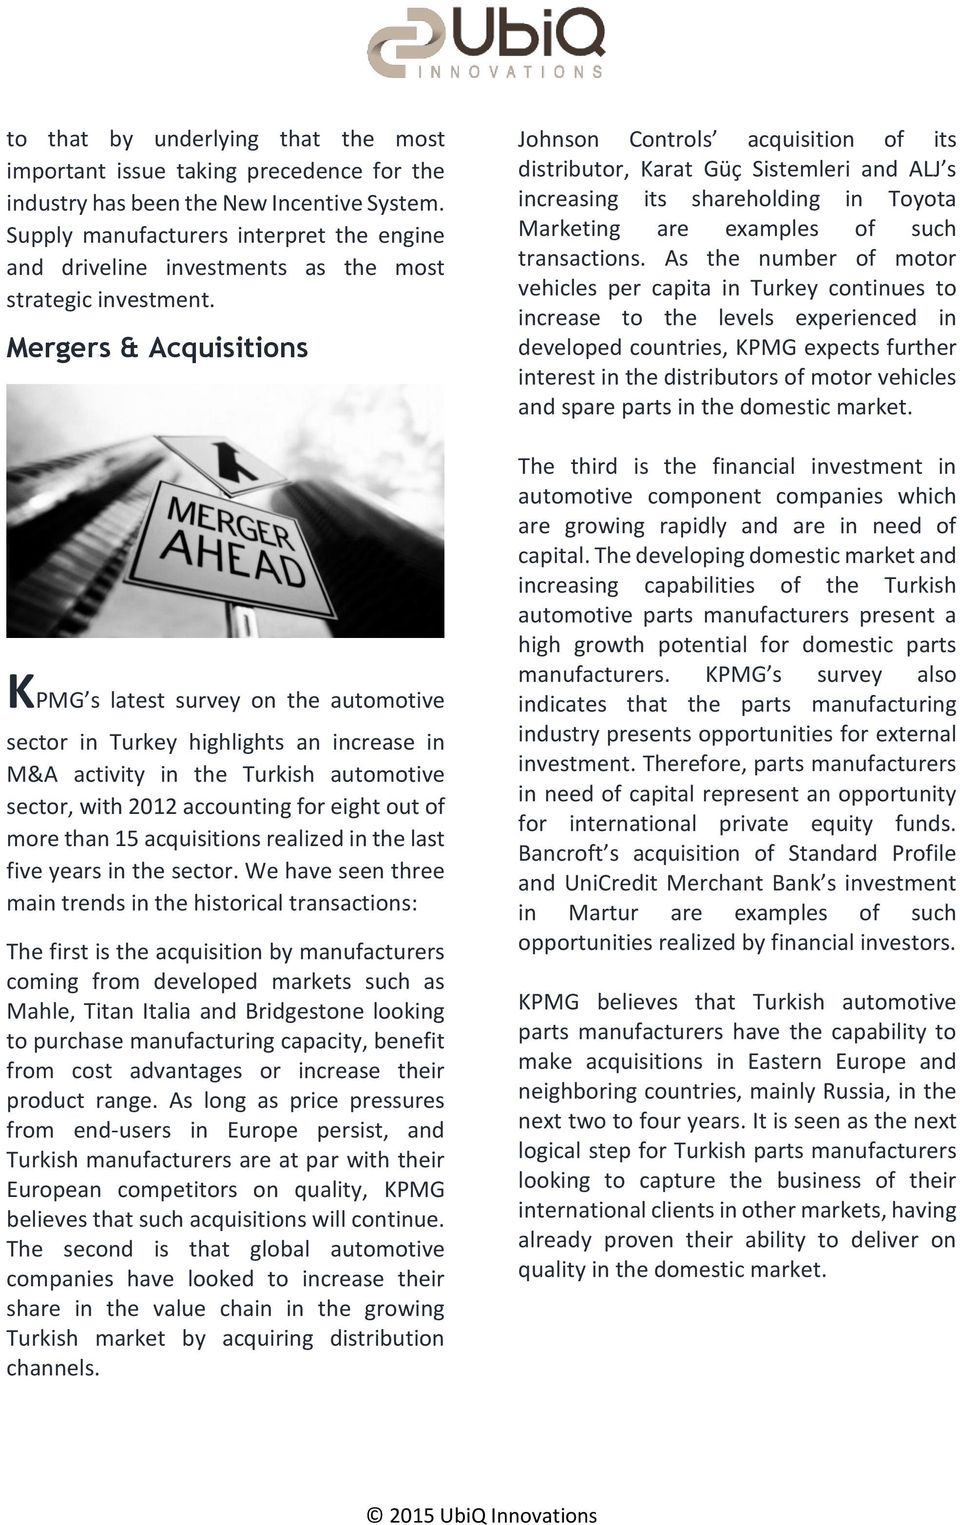 Mergers & Acquisitions KPMG s latest survey on the automotive sector in Turkey highlights an increase in M&A activity in the Turkish automotive sector, with 2012 accounting for eight out of more than